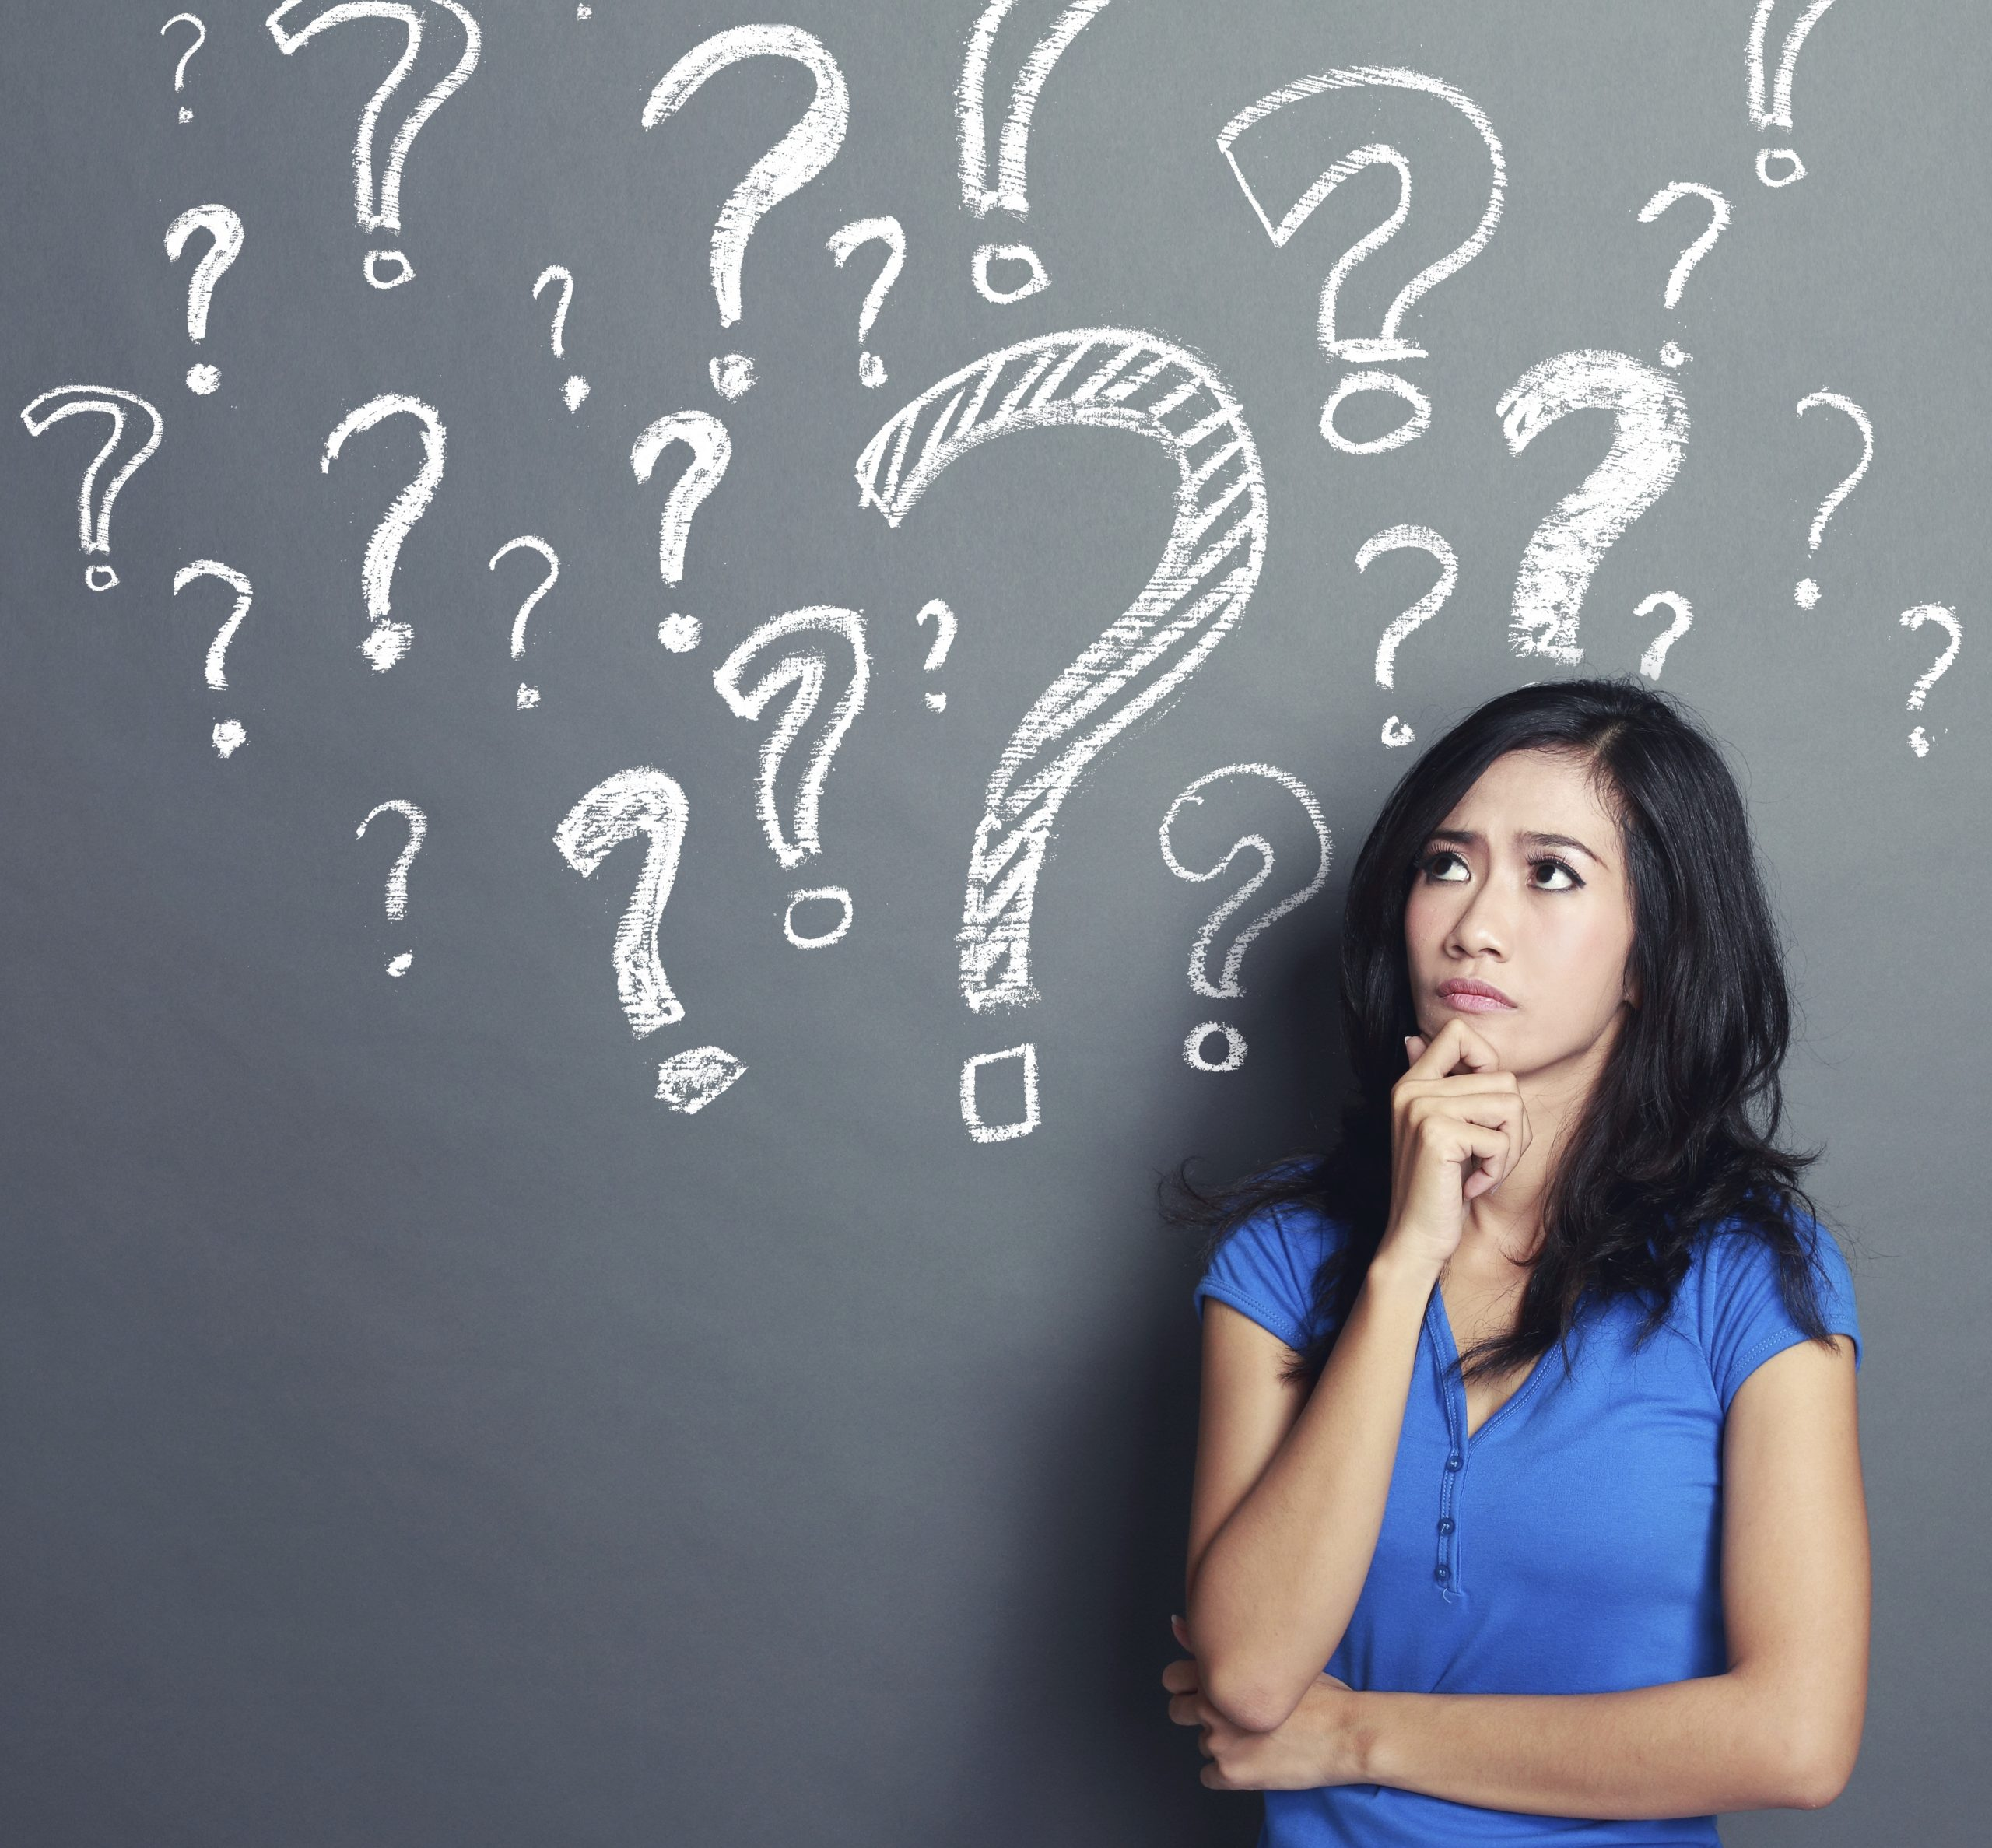 Questions About Addiction Treatment? Ask the Experts!